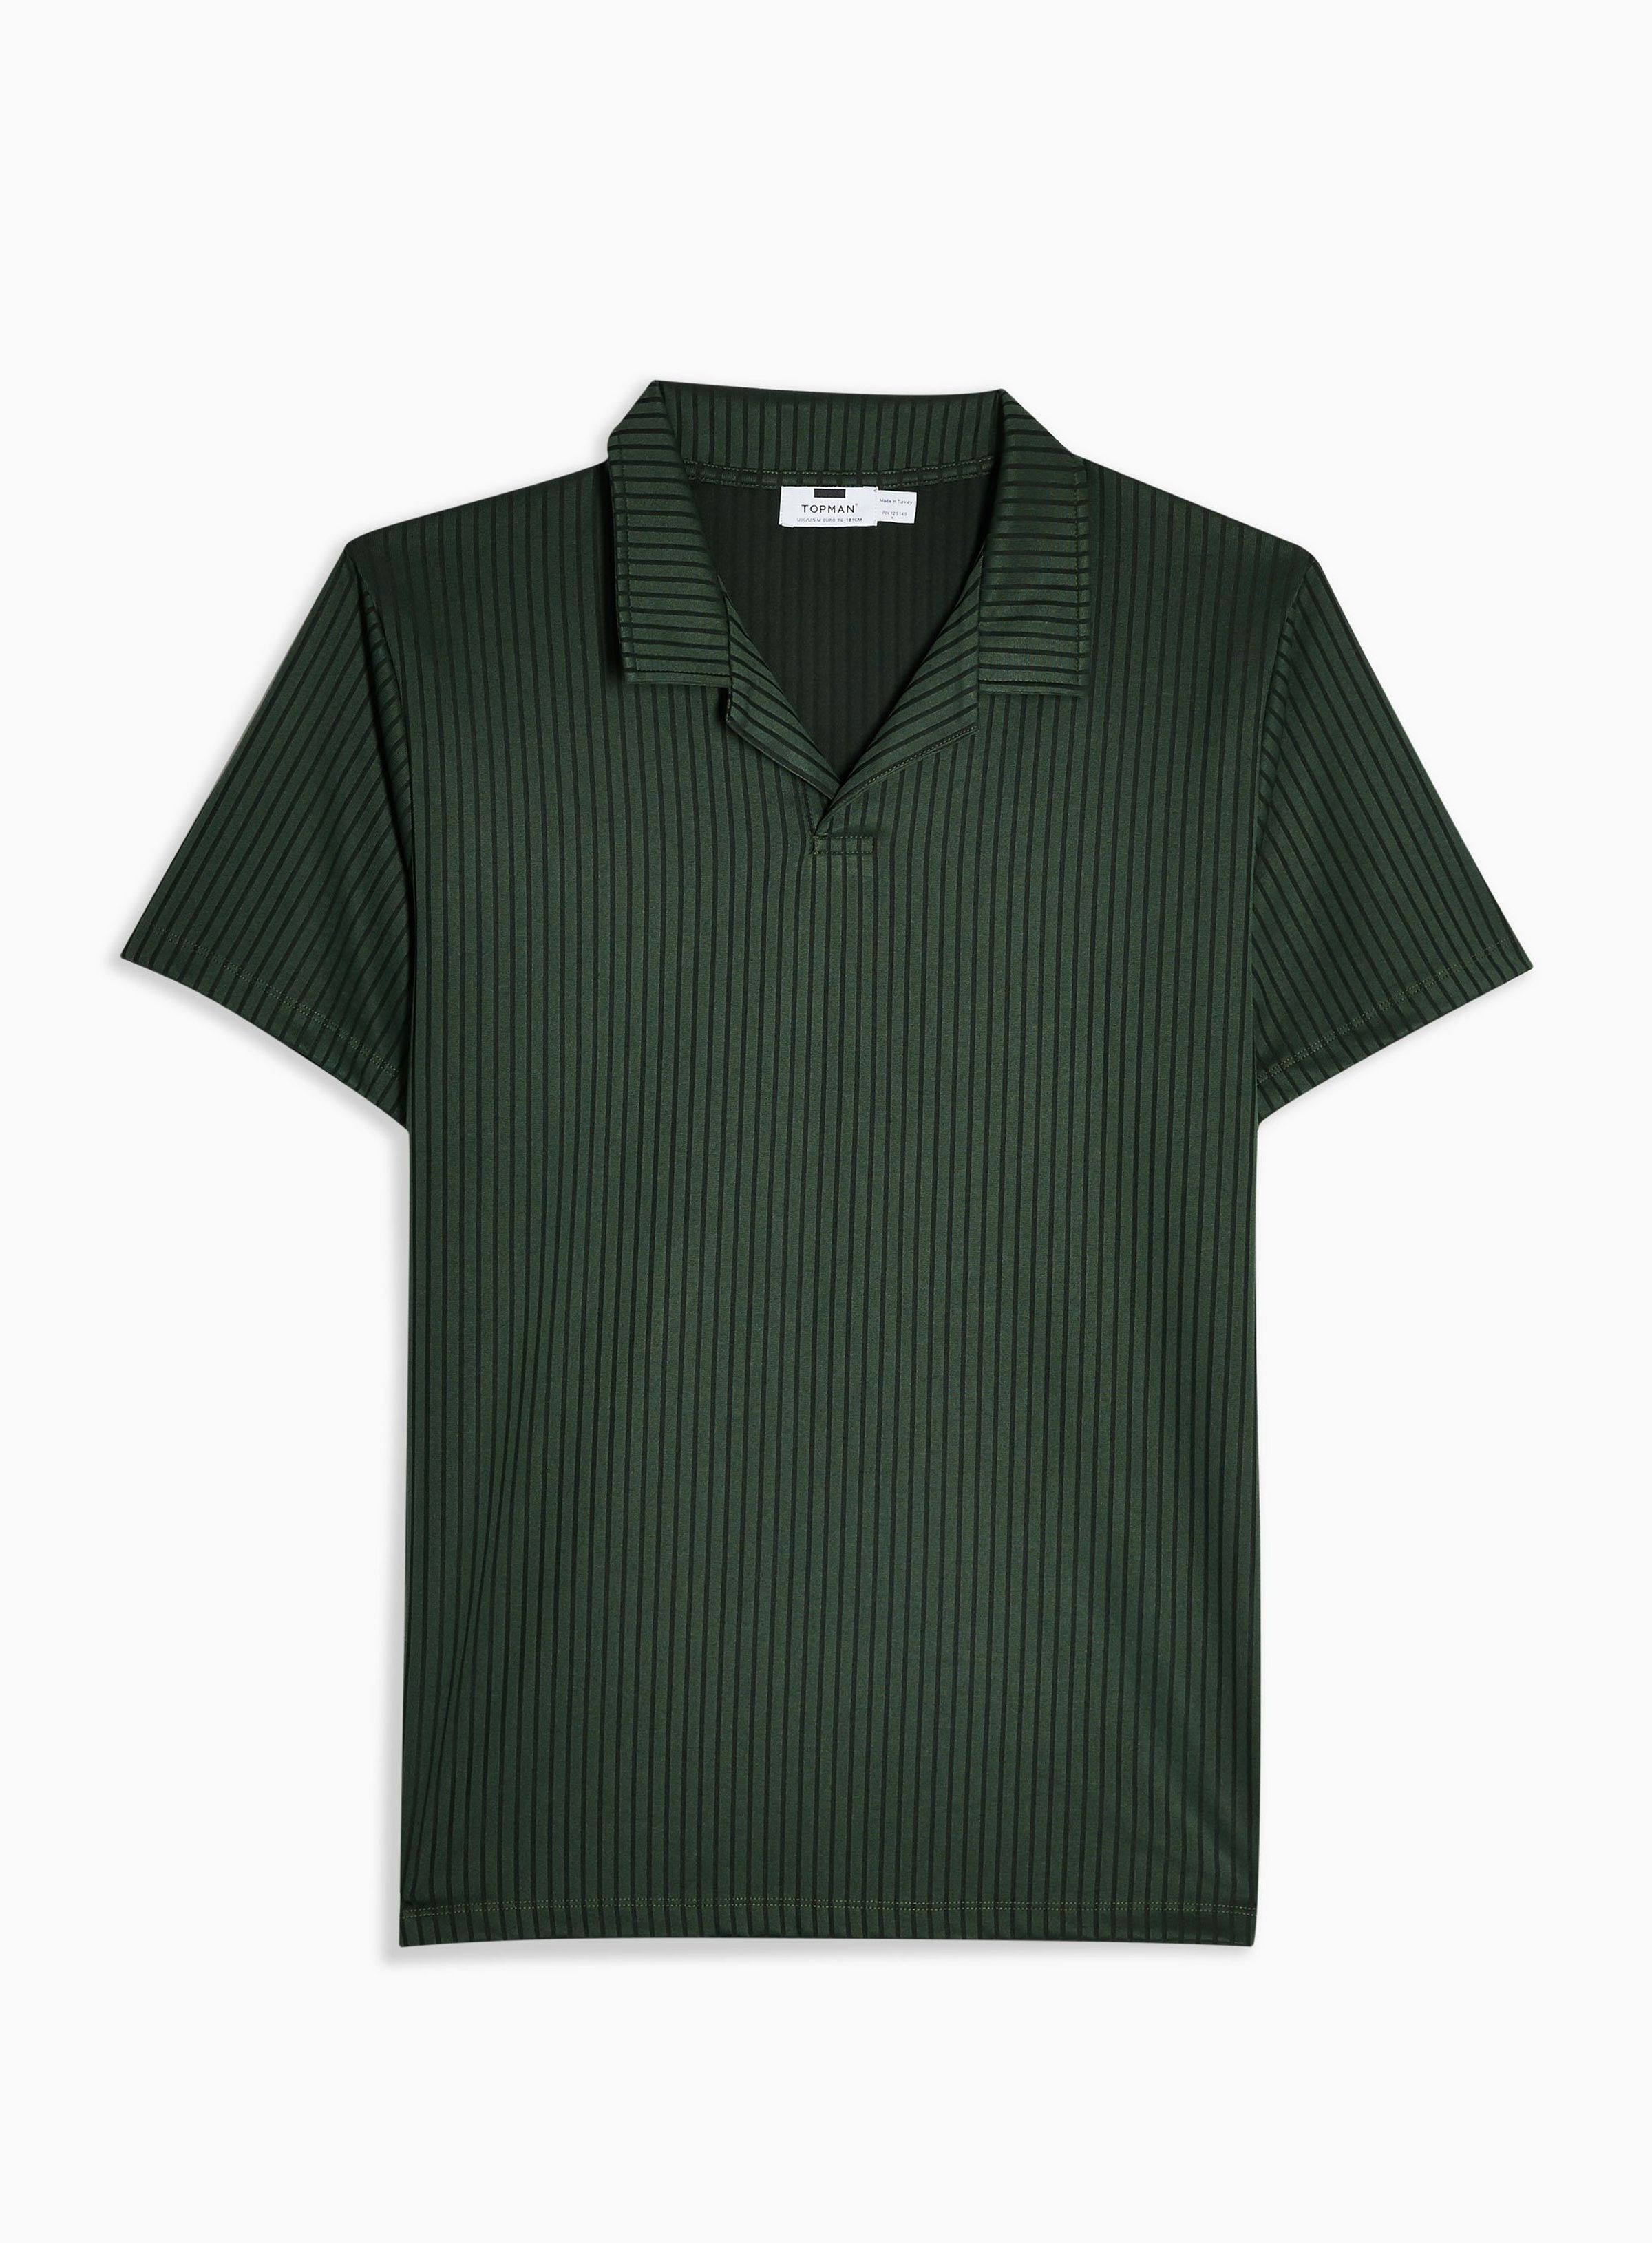 Topman polo - £22 - Slink into summer with this sexy polo design from Topman which is perfect for going from day to night